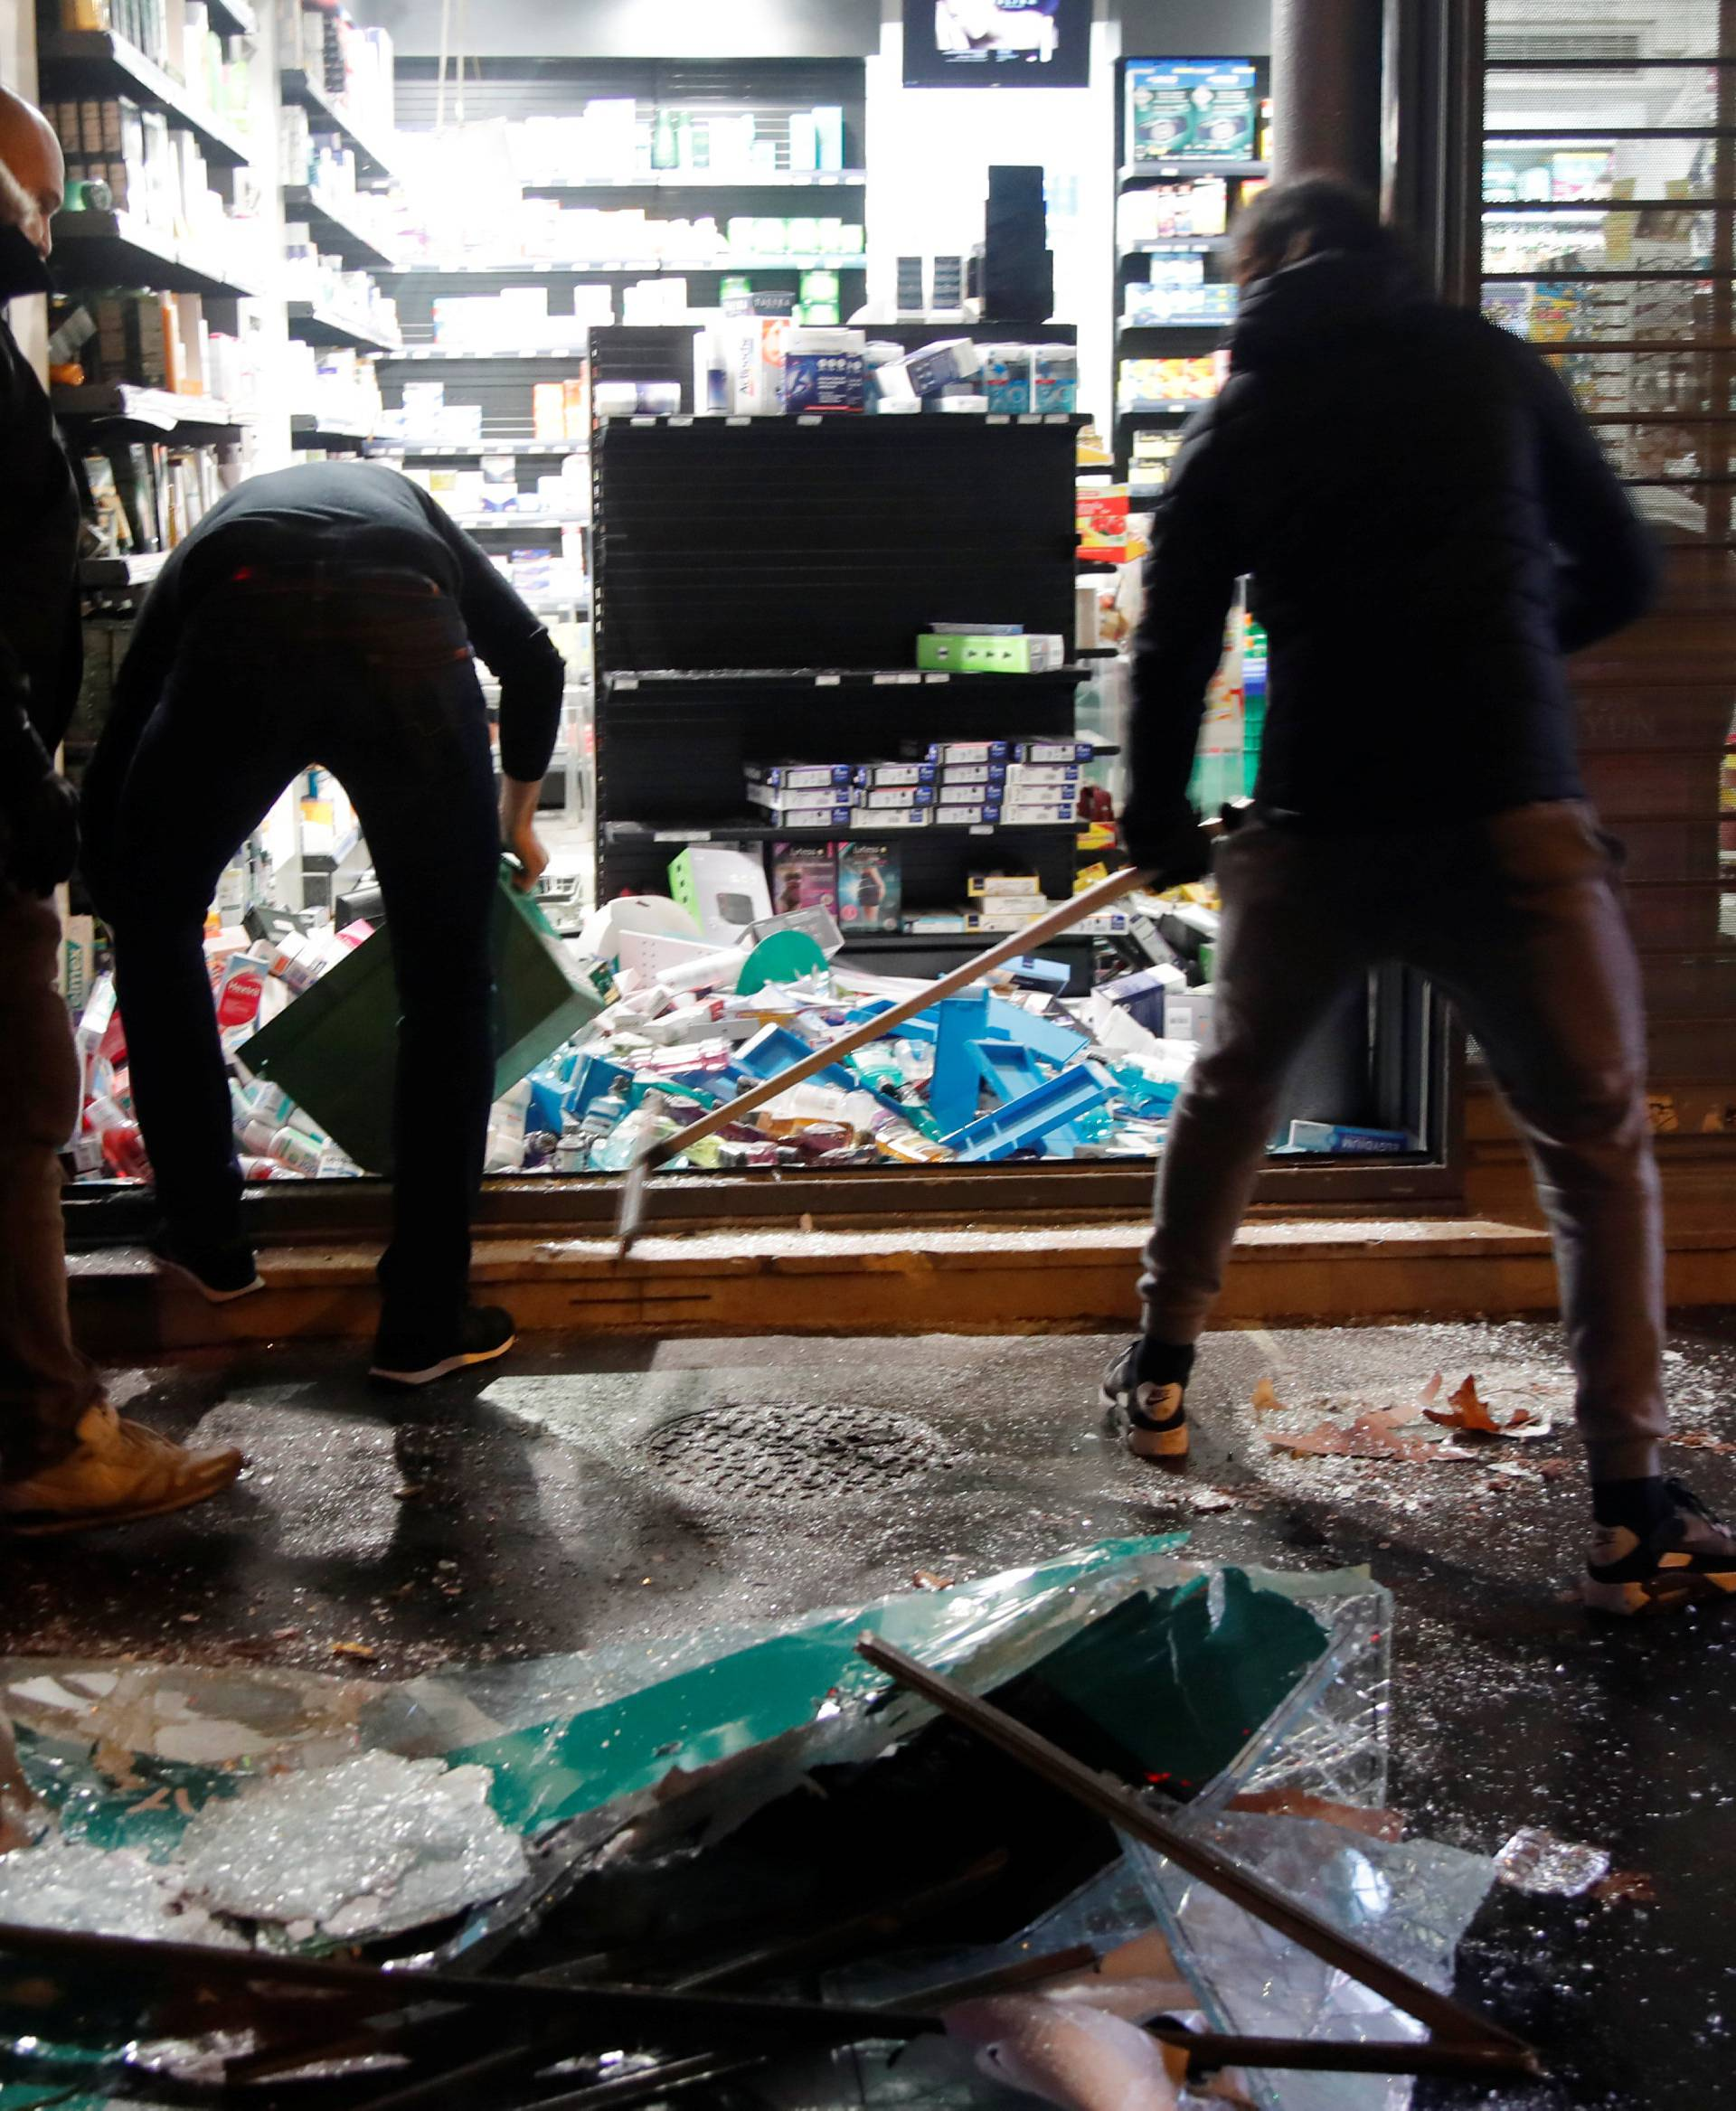 People try to clean uo a destroyed shop window on avenue Kleber after clashes with protesters wearing yellow vests, a symbol of a French drivers' protest against higher diesel taxes, in Paris